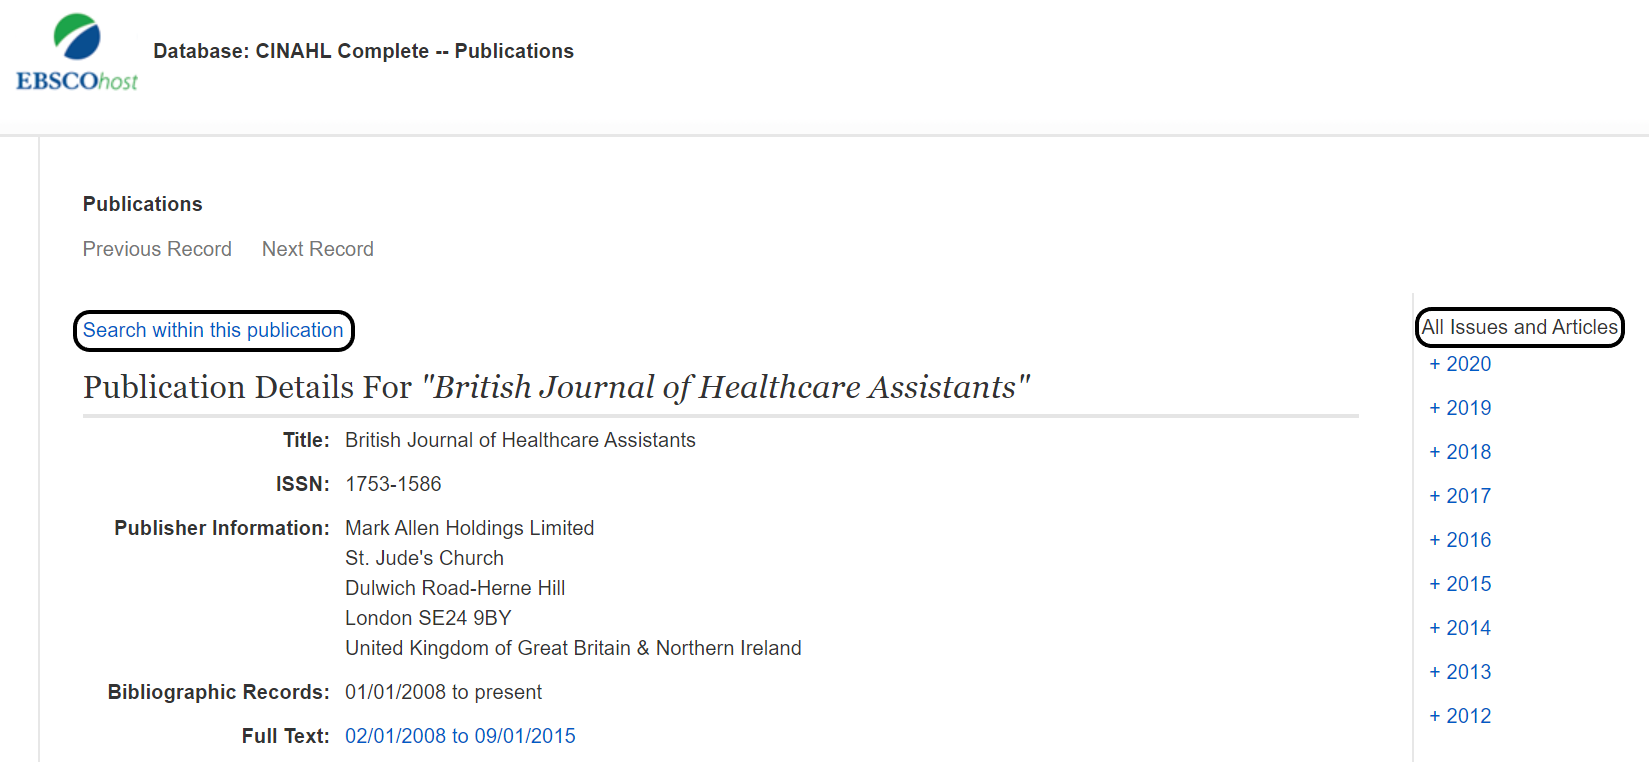 EBSCOhost's search journal and browse issues and volumes in CINAHL Complete